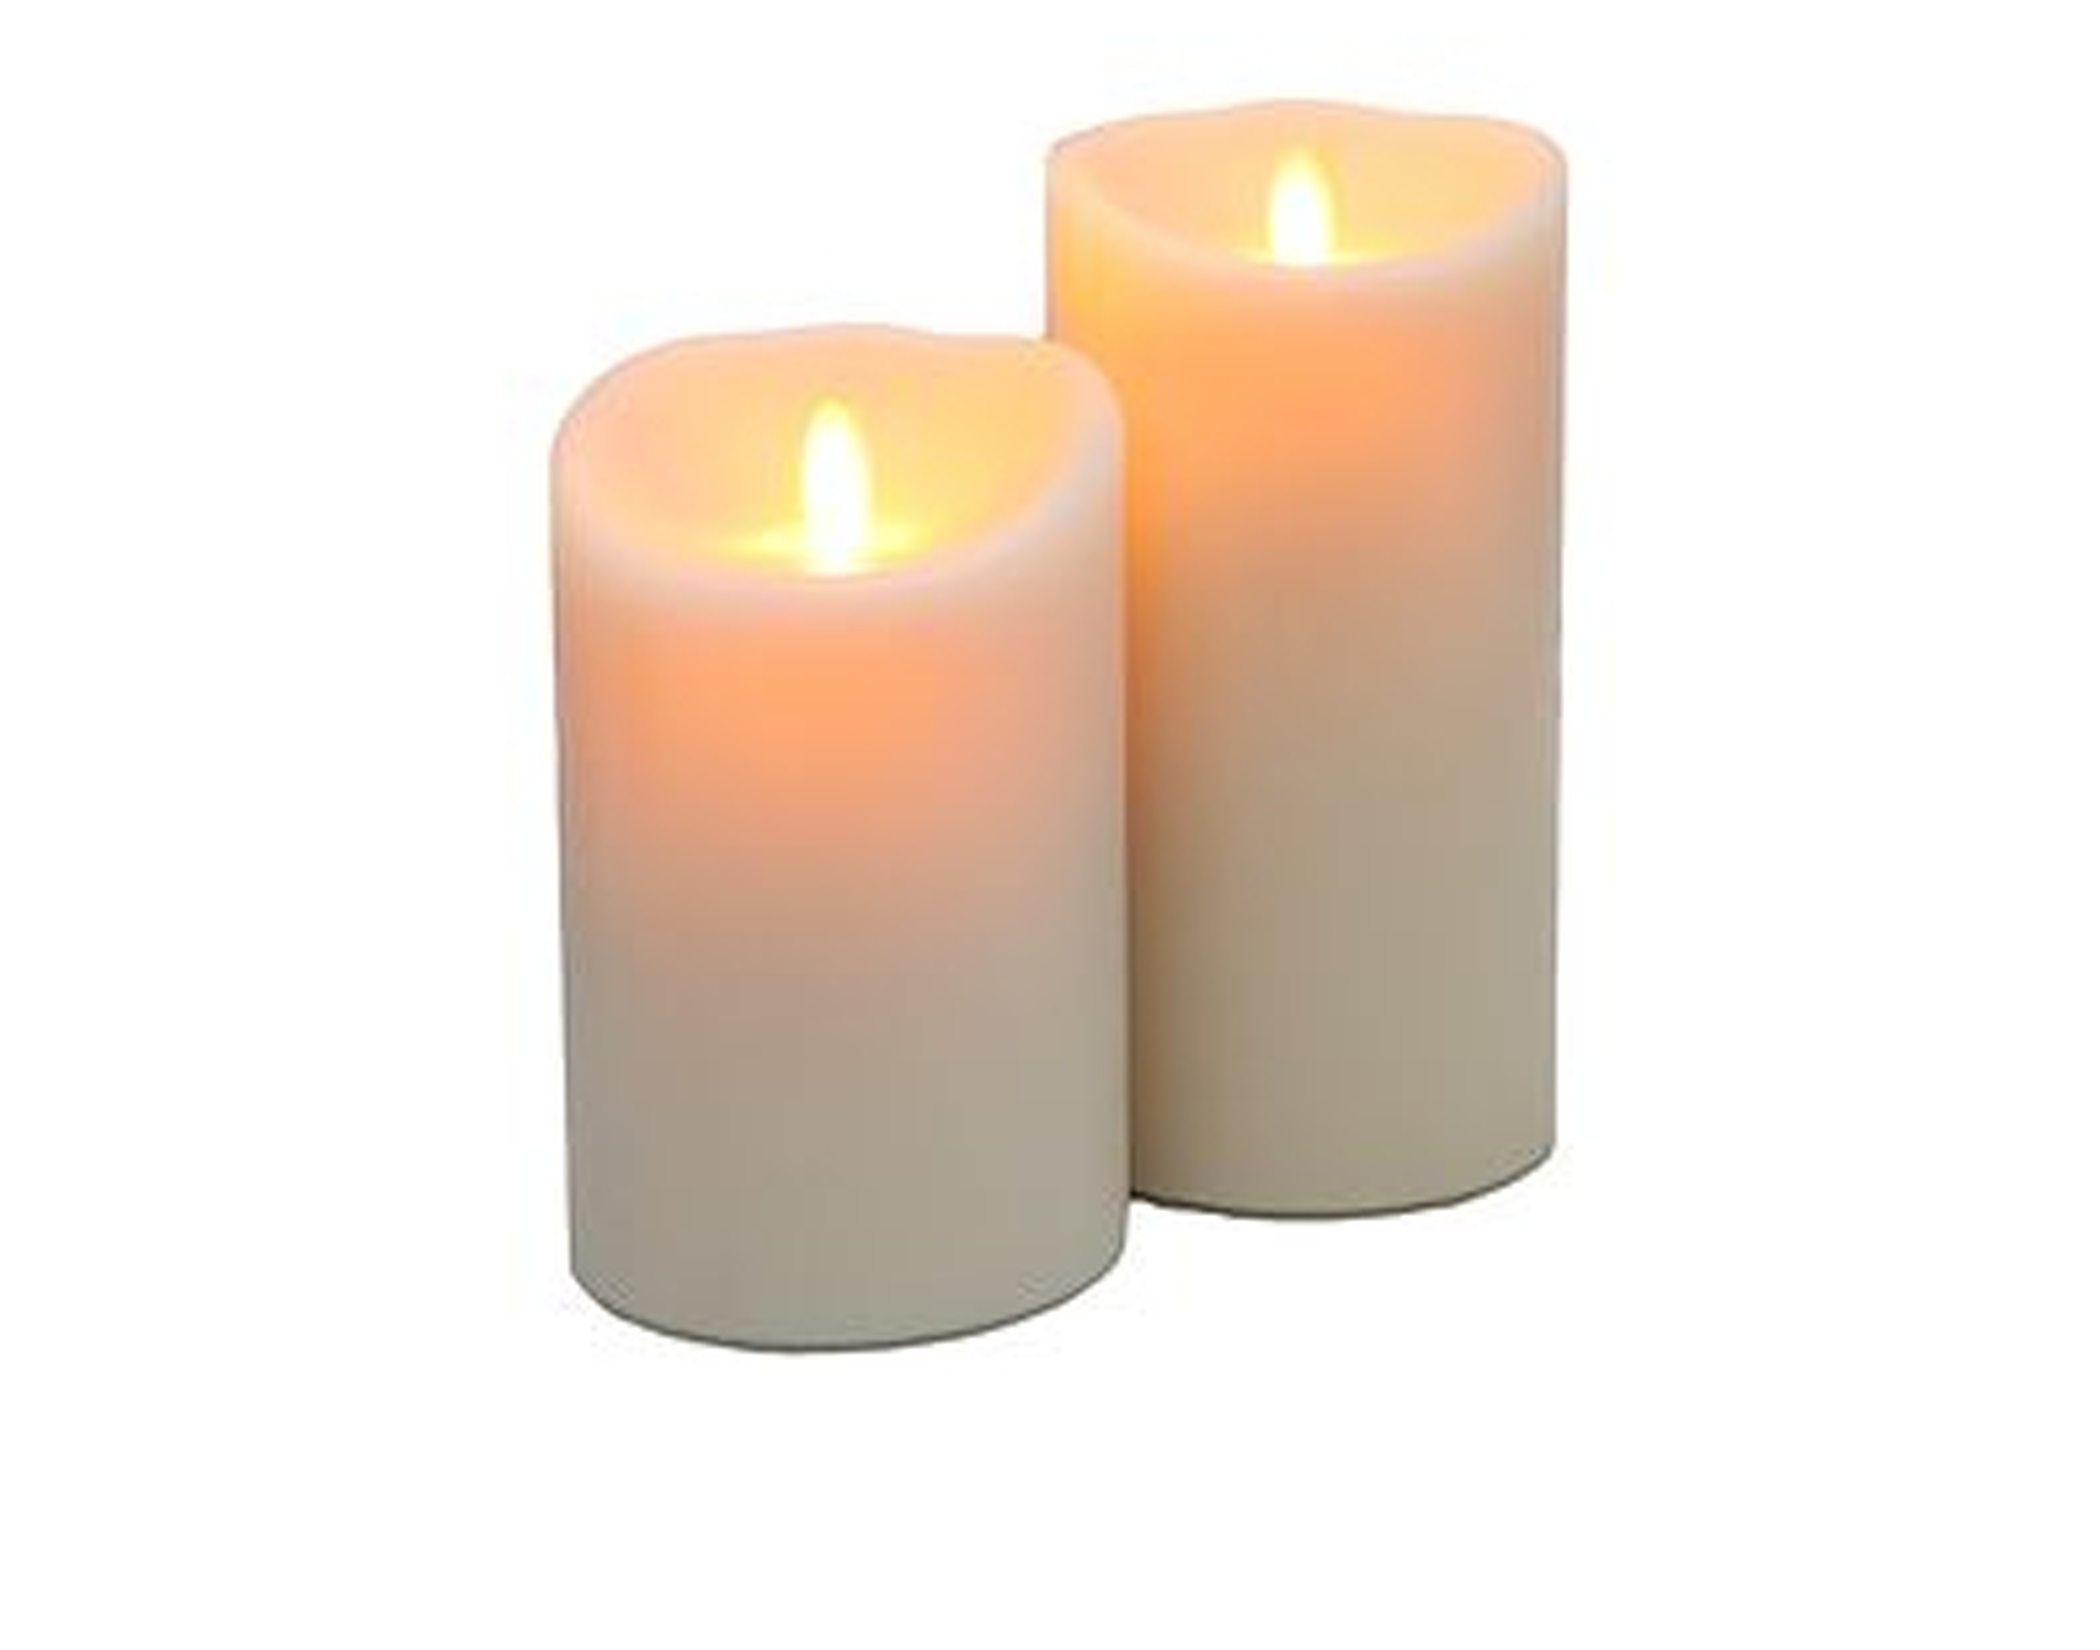 Candle glow png. Hd transparent images pluspng